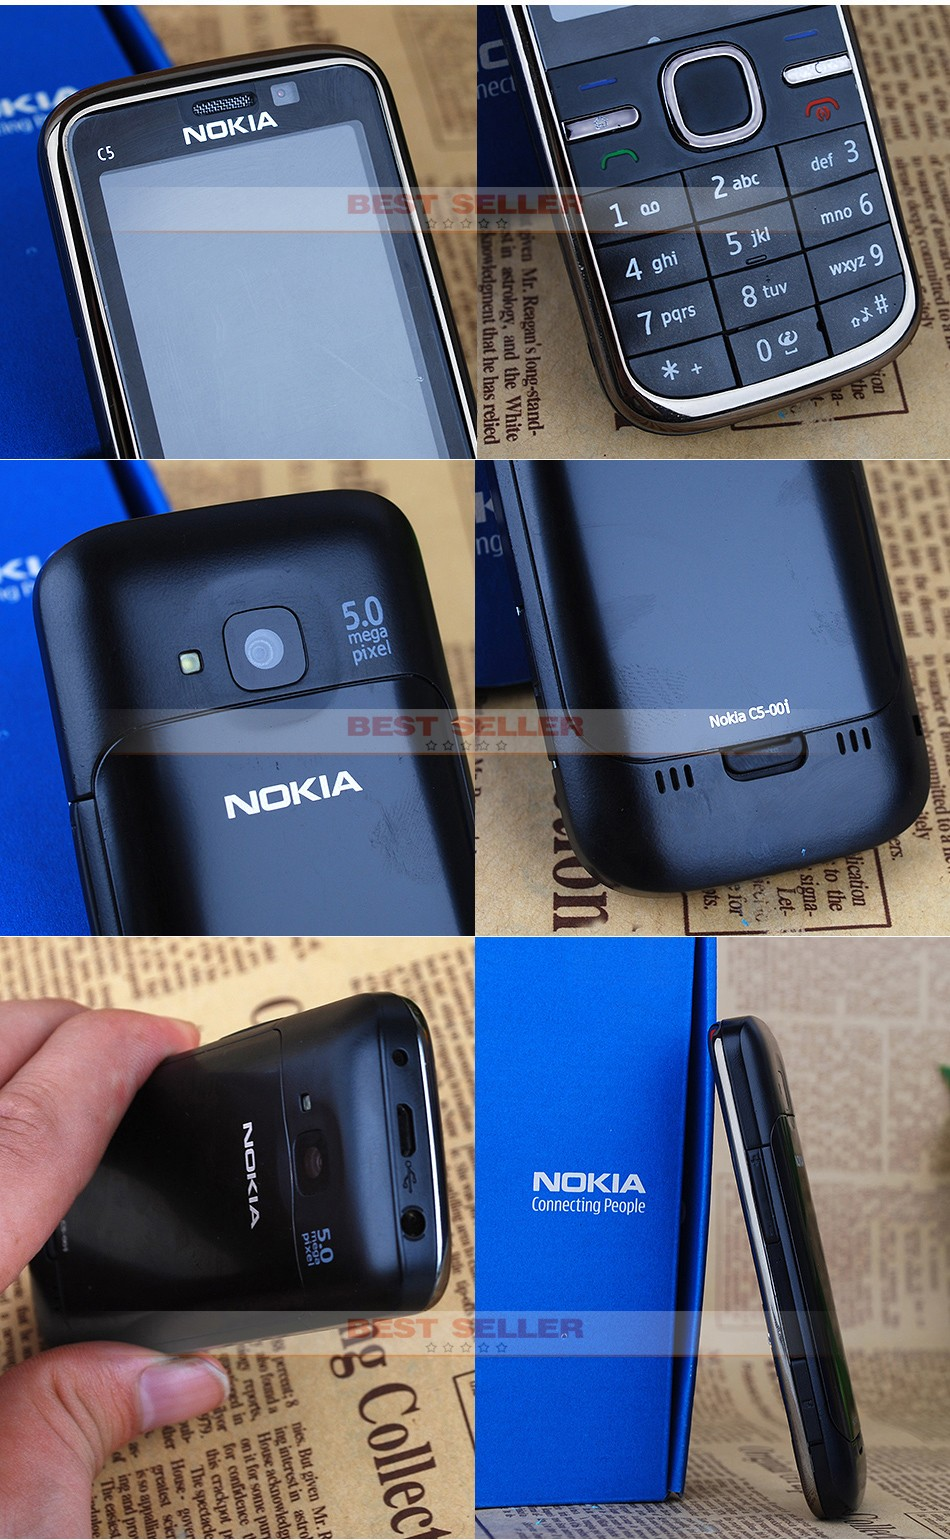 Refurbished Phone Original Nokia C5 00 Cell Phones Gsm 3g 3mp E71 05 Specifications